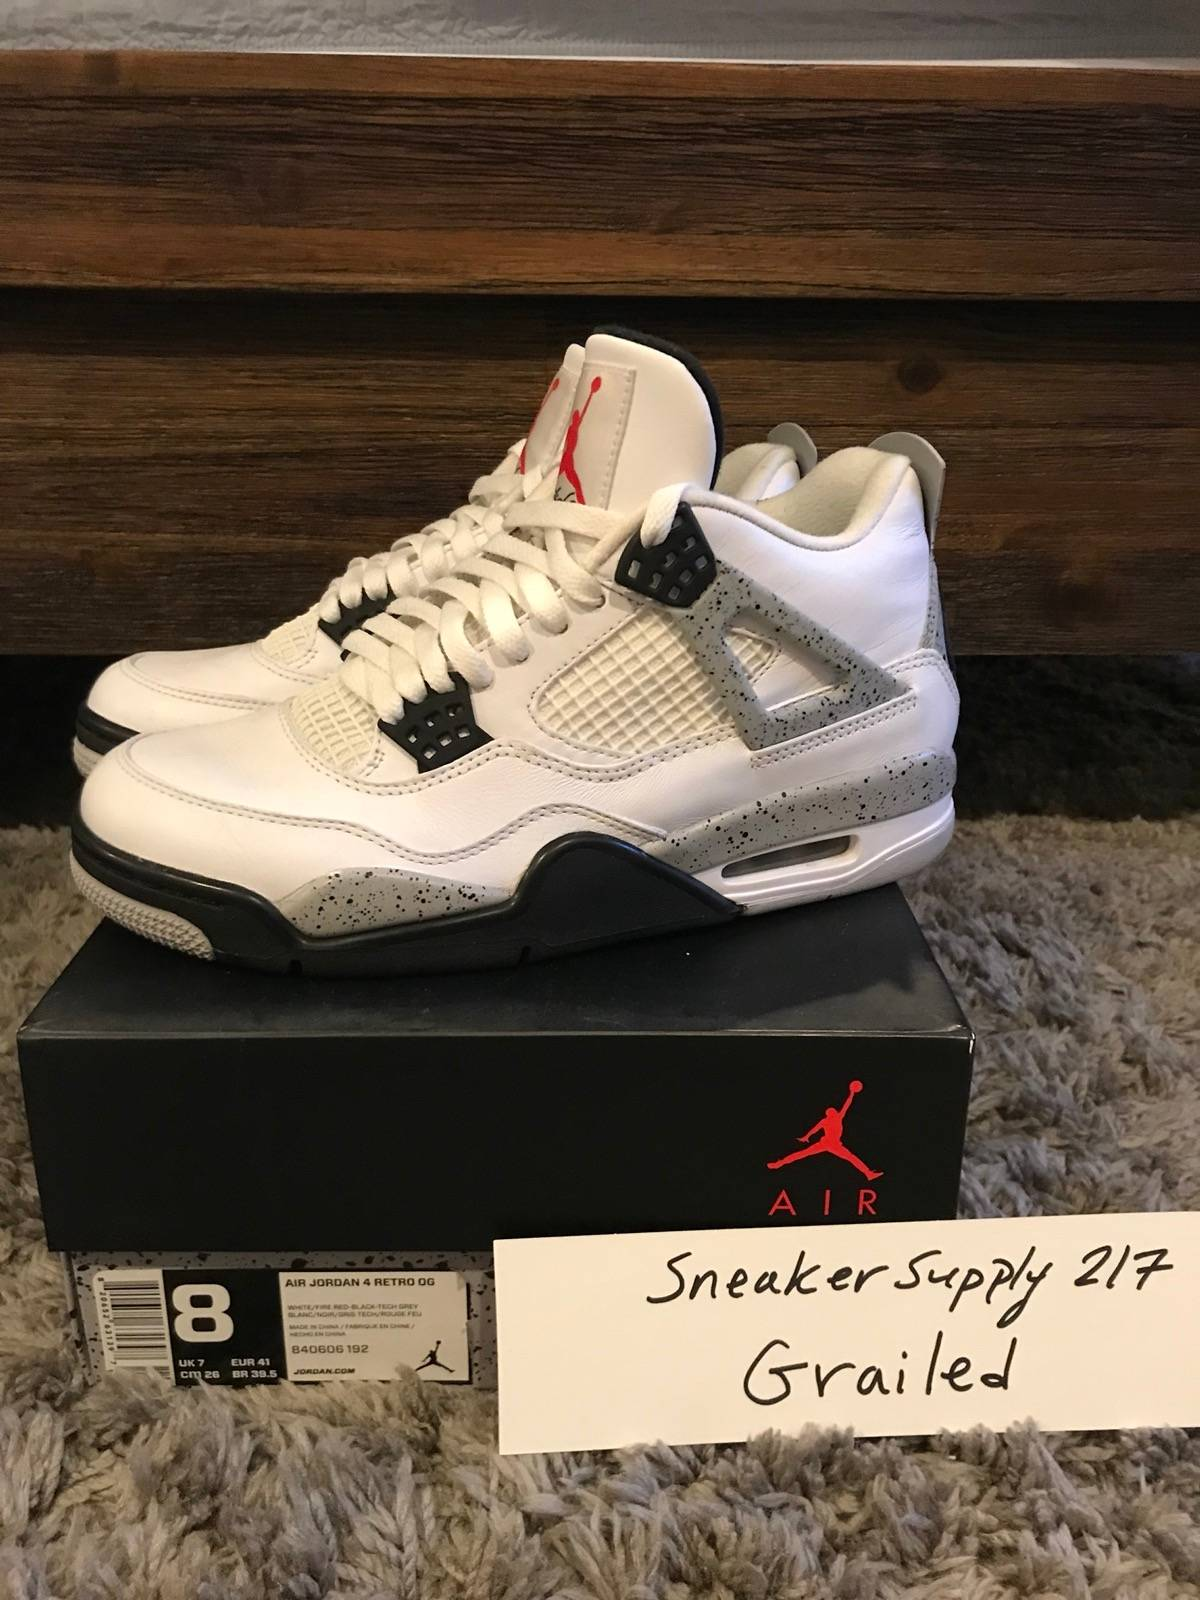 "buy online 2c215 ad934 Jordan Brand Nike Air Jordan 4 White Cement ""Nike Air"" Off White Yeezy  Supreme Louis Vuitton Gucci Size 8 $220"